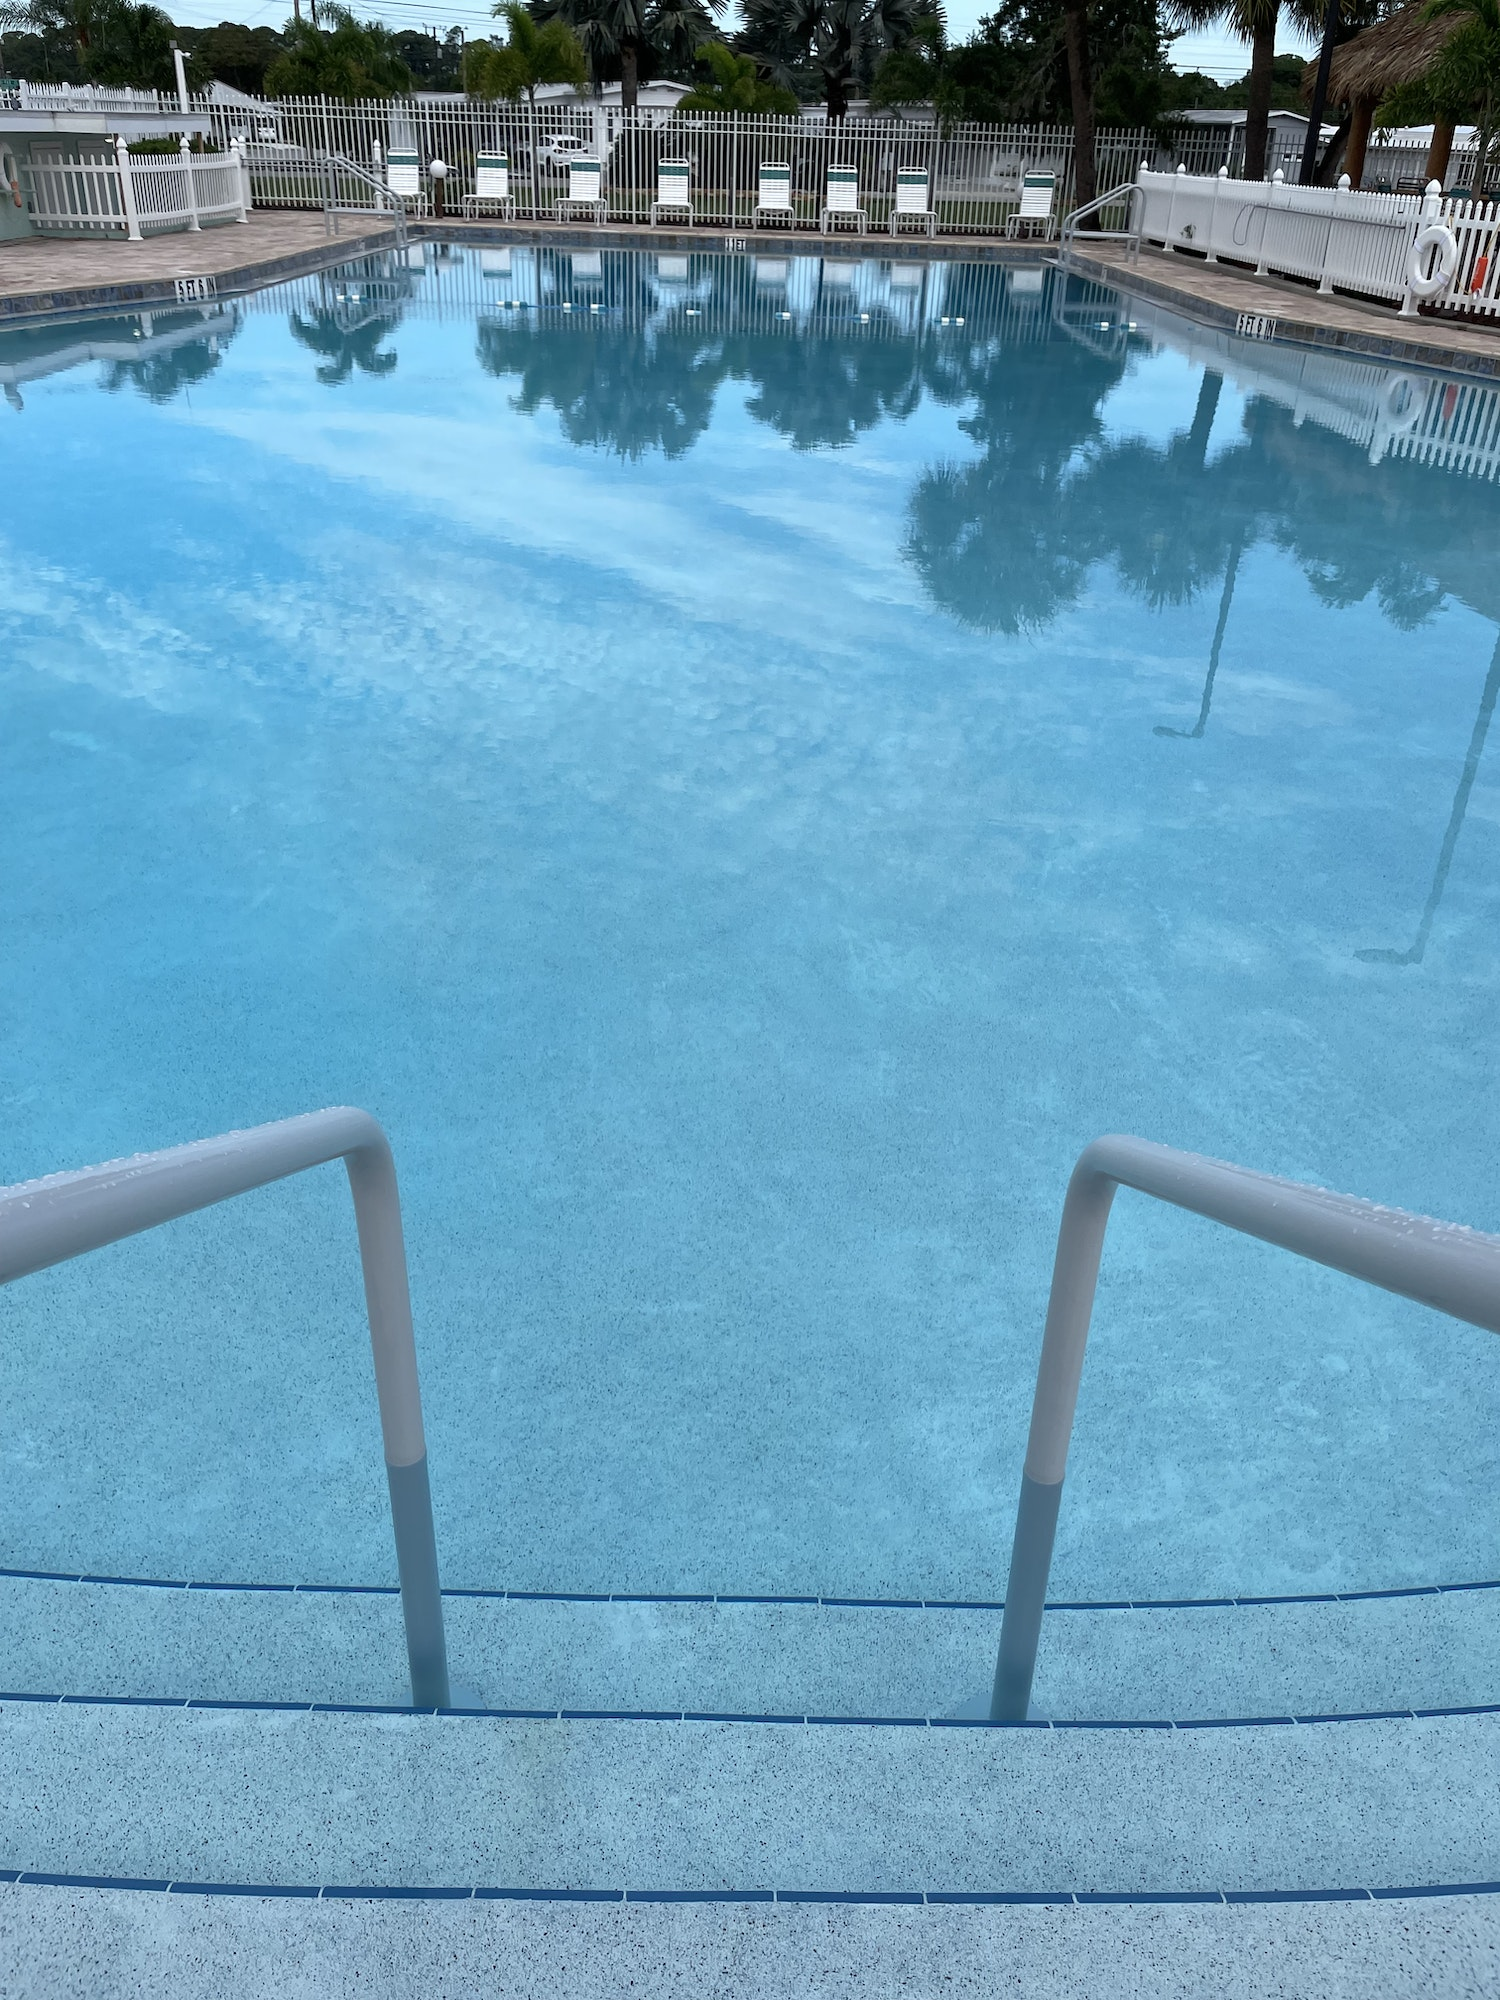 May contain: pool, water, swimming pool, handrail, and banister